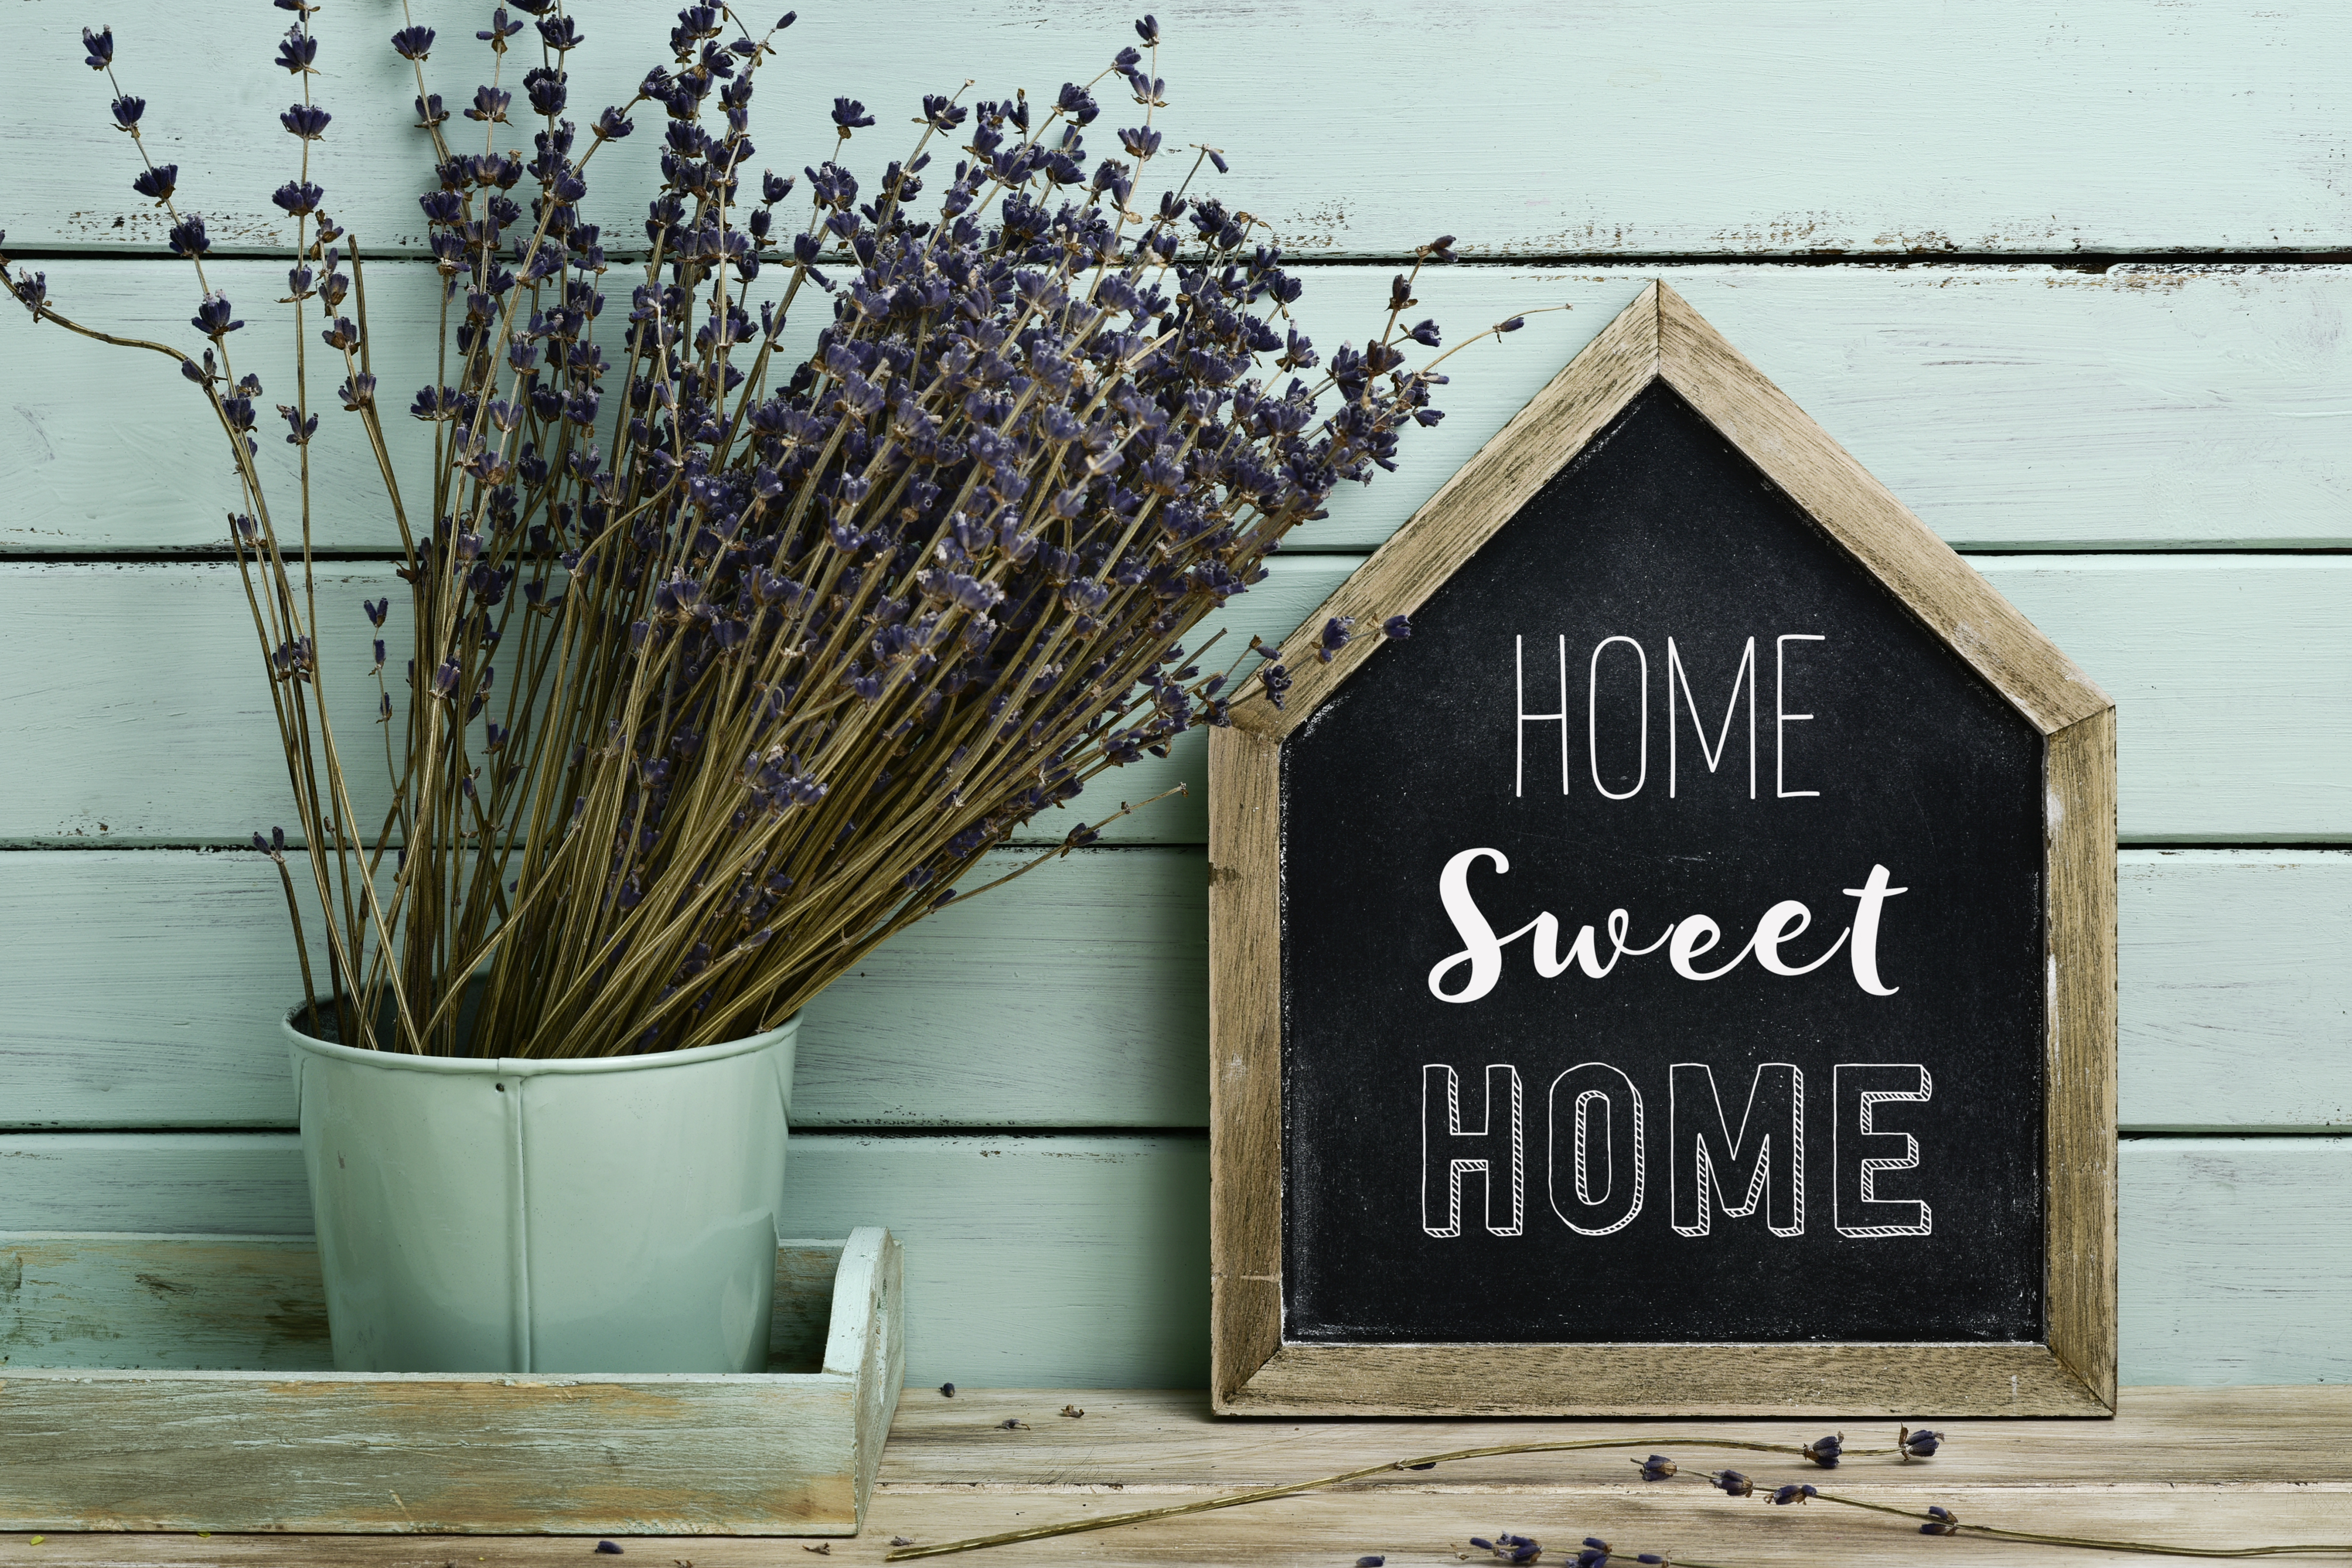 Home sweet home sign next to a bouquet of lavender